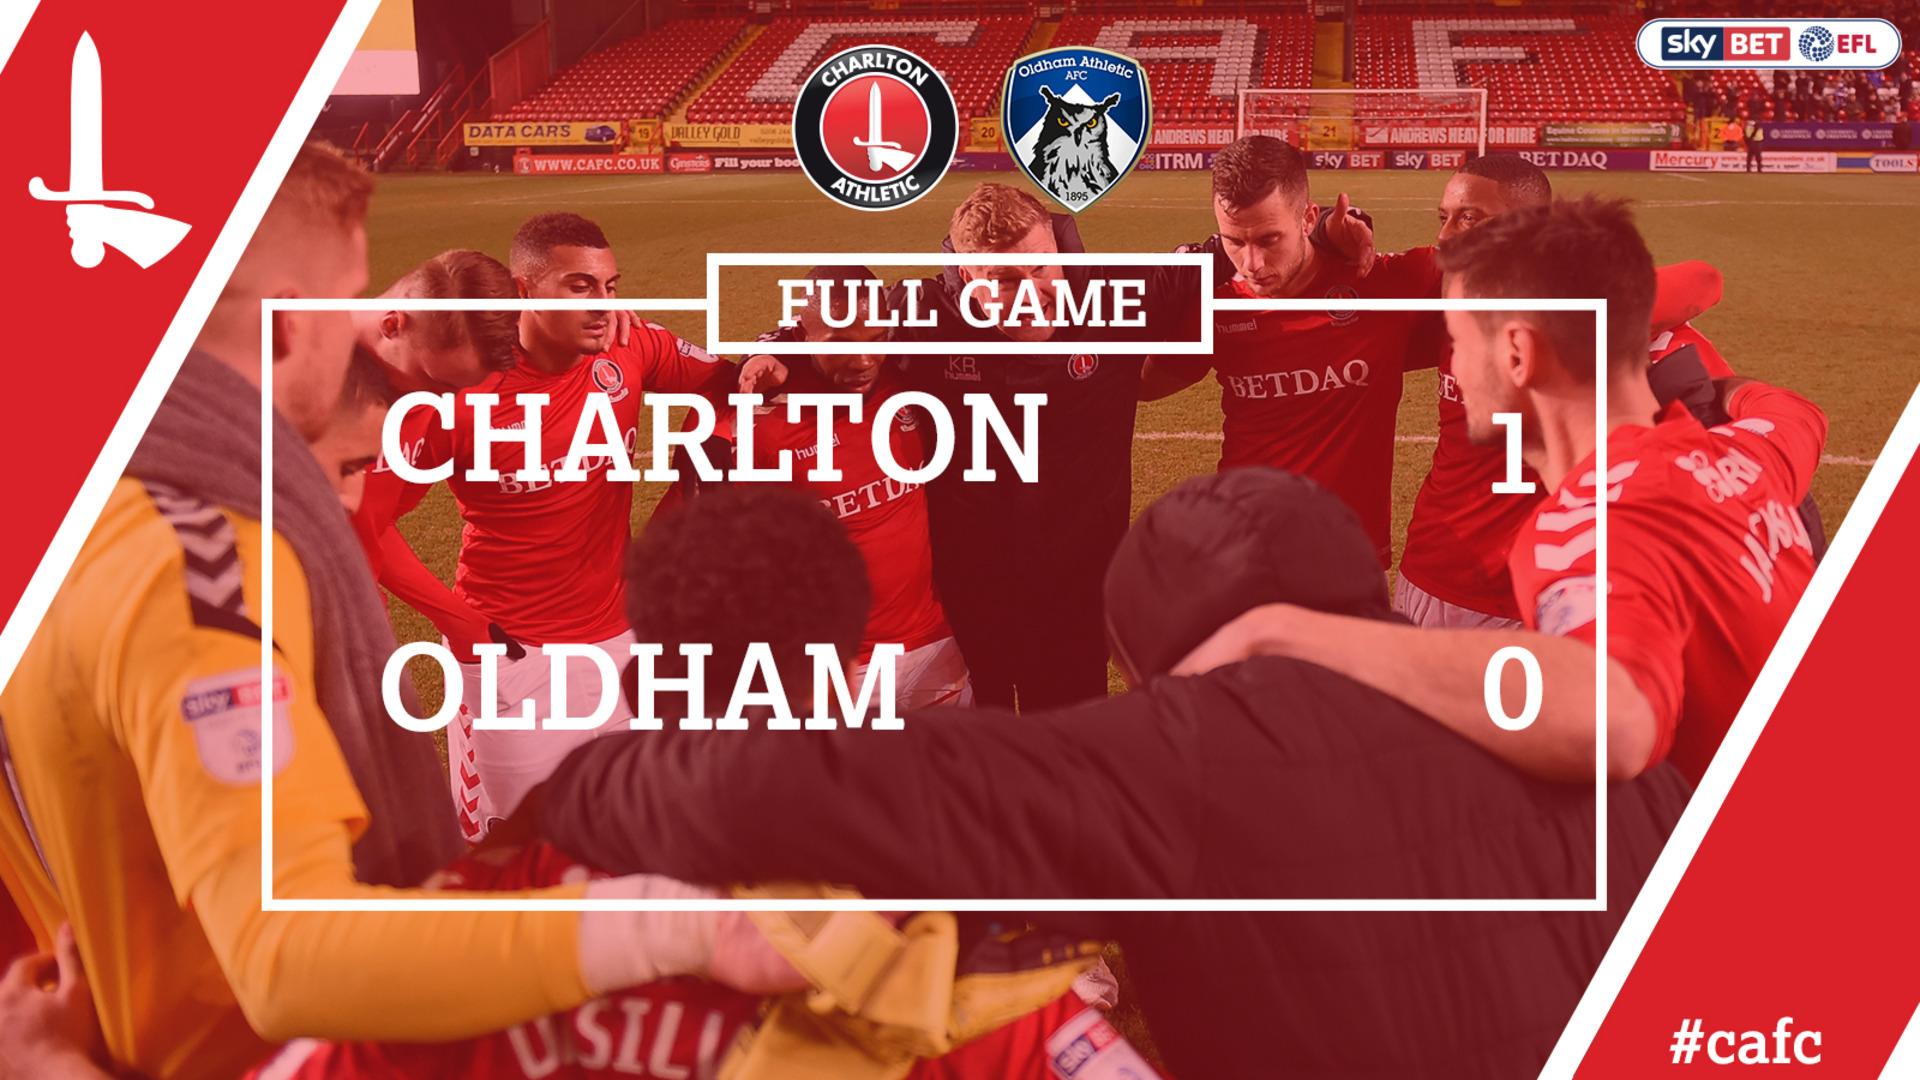 FULL GAME | Charlton 1 Oldham 0 (Jan 2017)